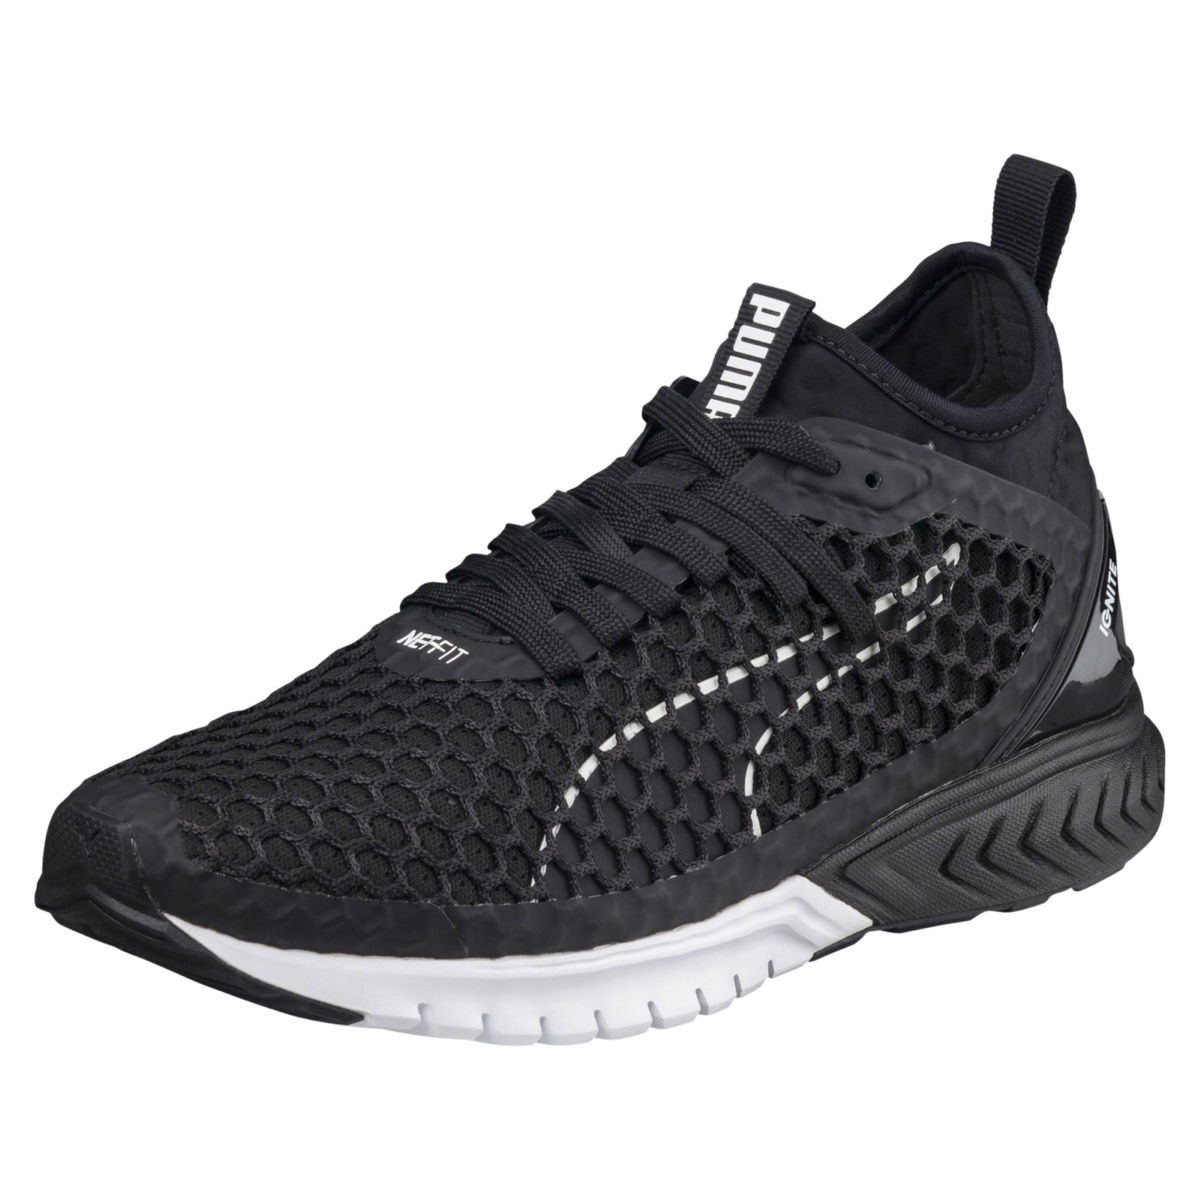 Chaussures Femme Puma Ignite Dual Netfit - UK 4.5 black-white